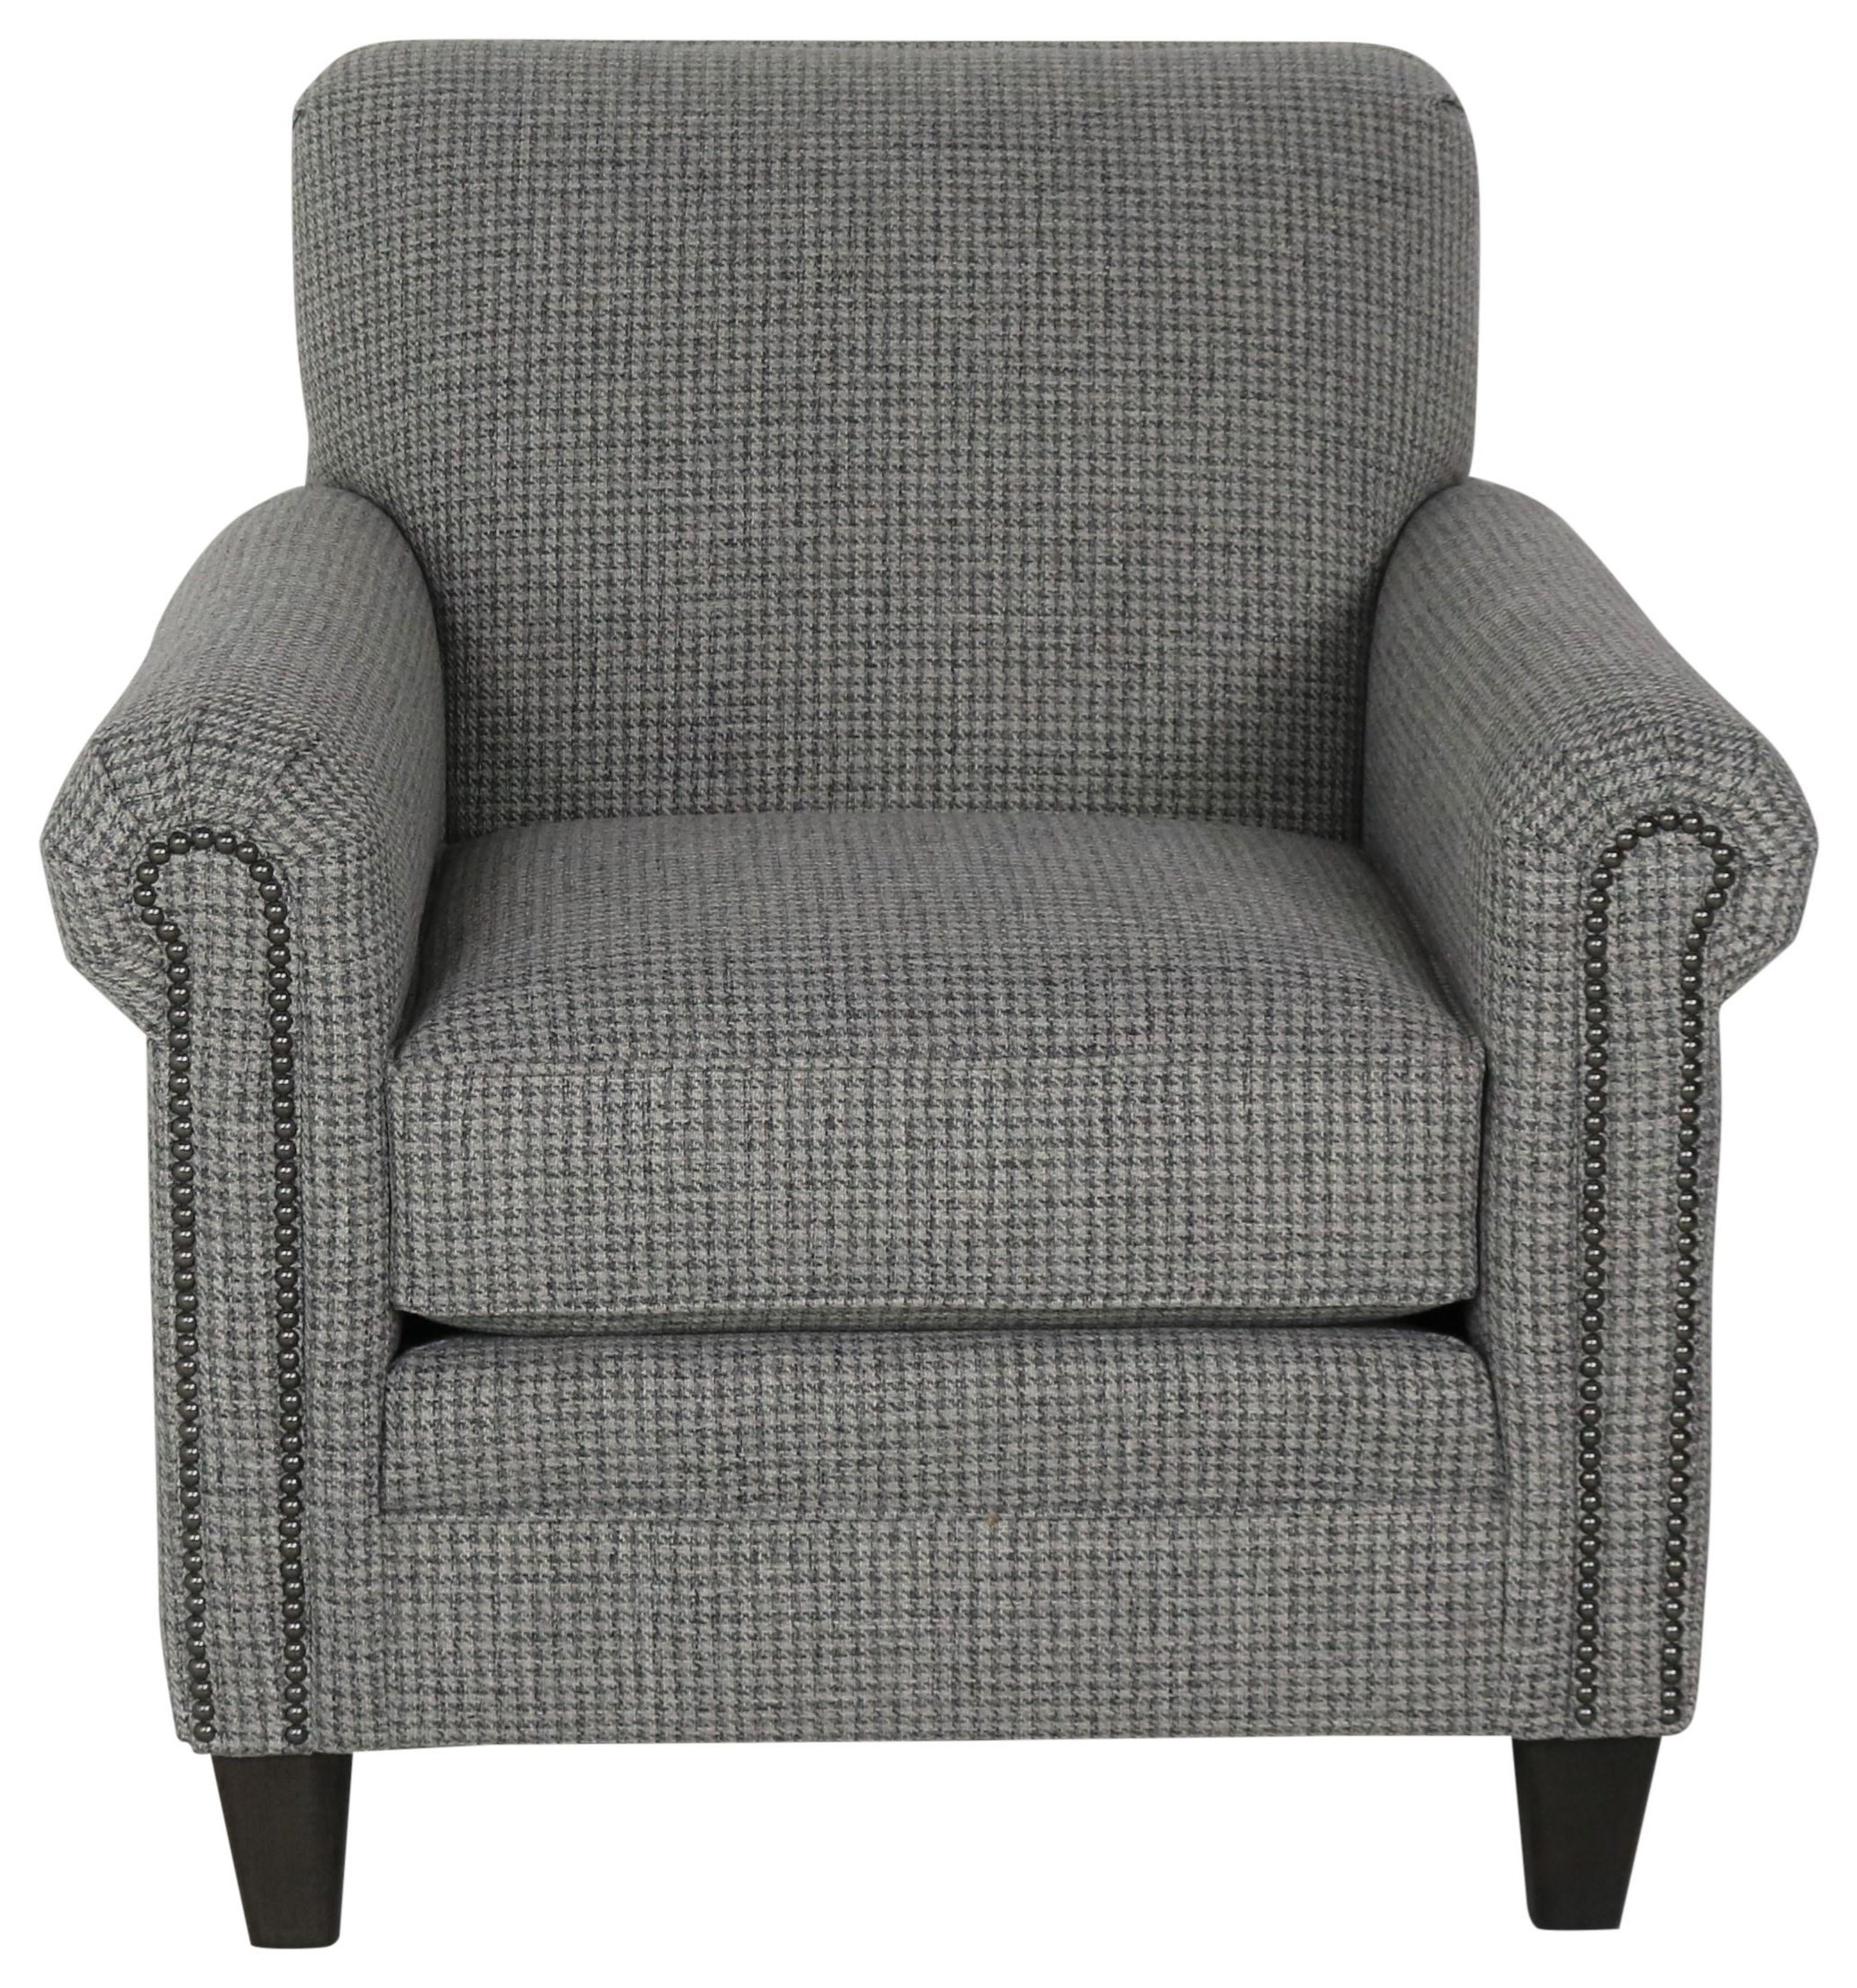 Build Your Own 3000 Series Customizable Chair by Smith Brothers at Sprintz Furniture